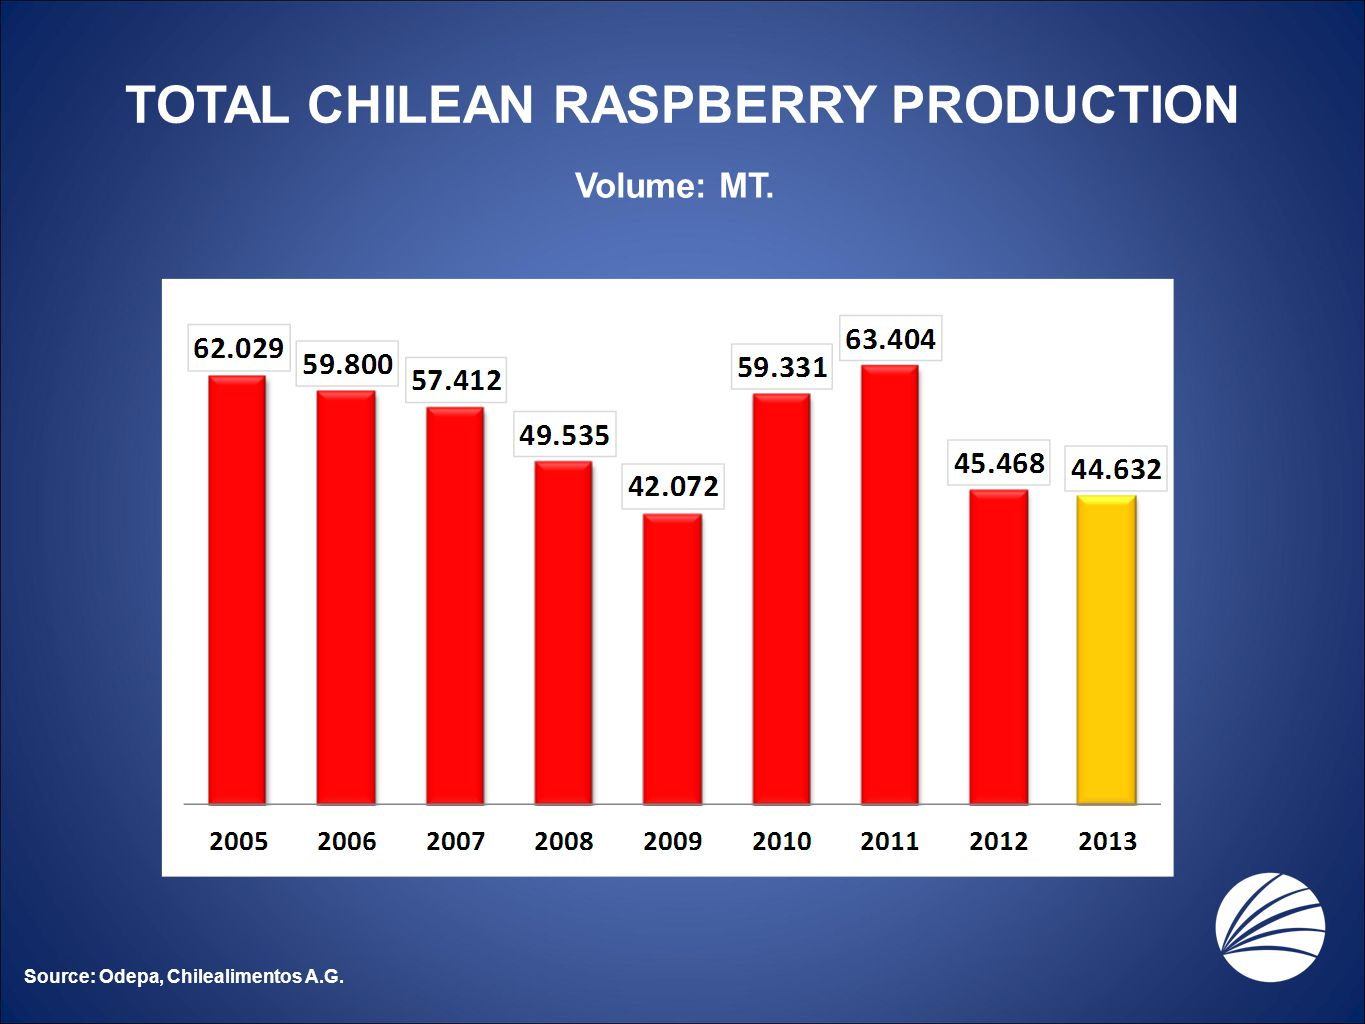 TOTAL CHILEAN RASPBERRY PRODUCTION